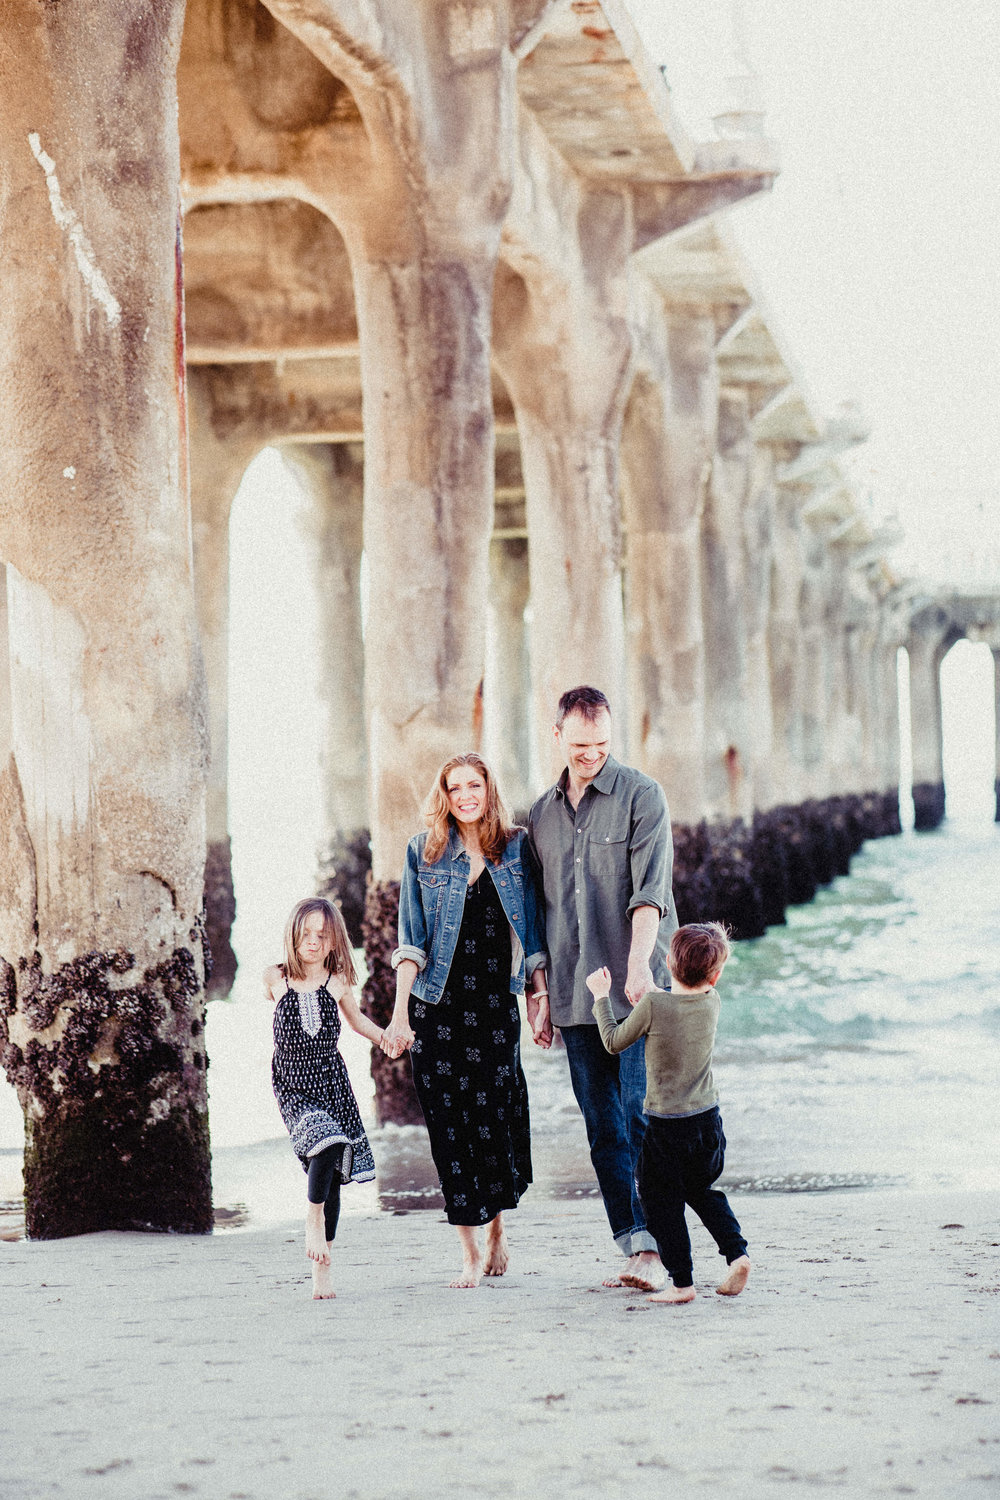 la manhatten beach photo shooting family portraits14.jpg